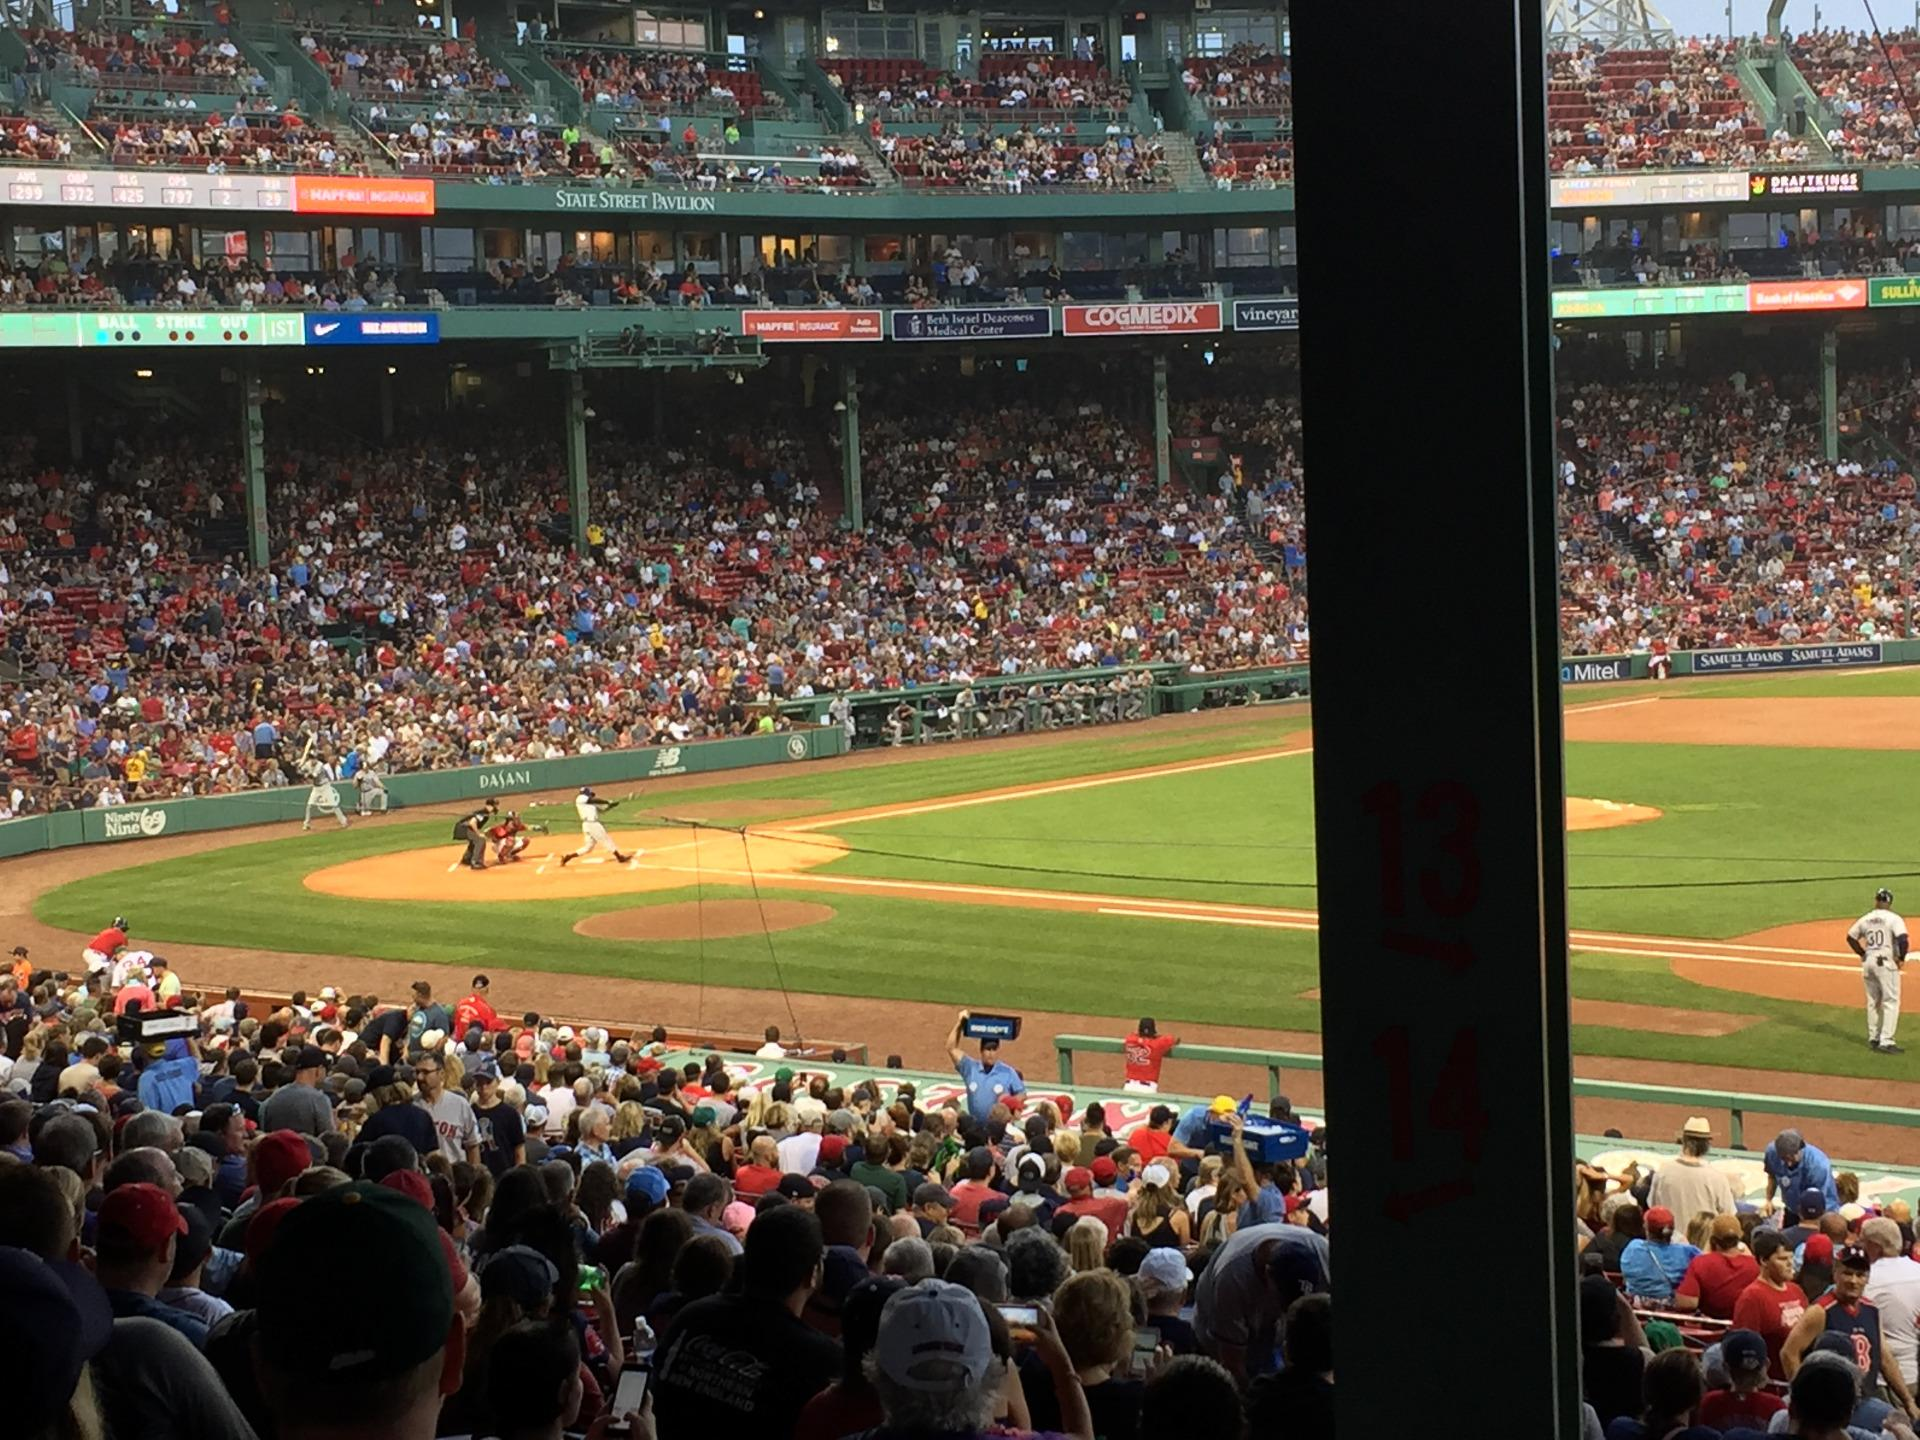 Fenway Park Section Grandstand 13 Row 6 Seat 16